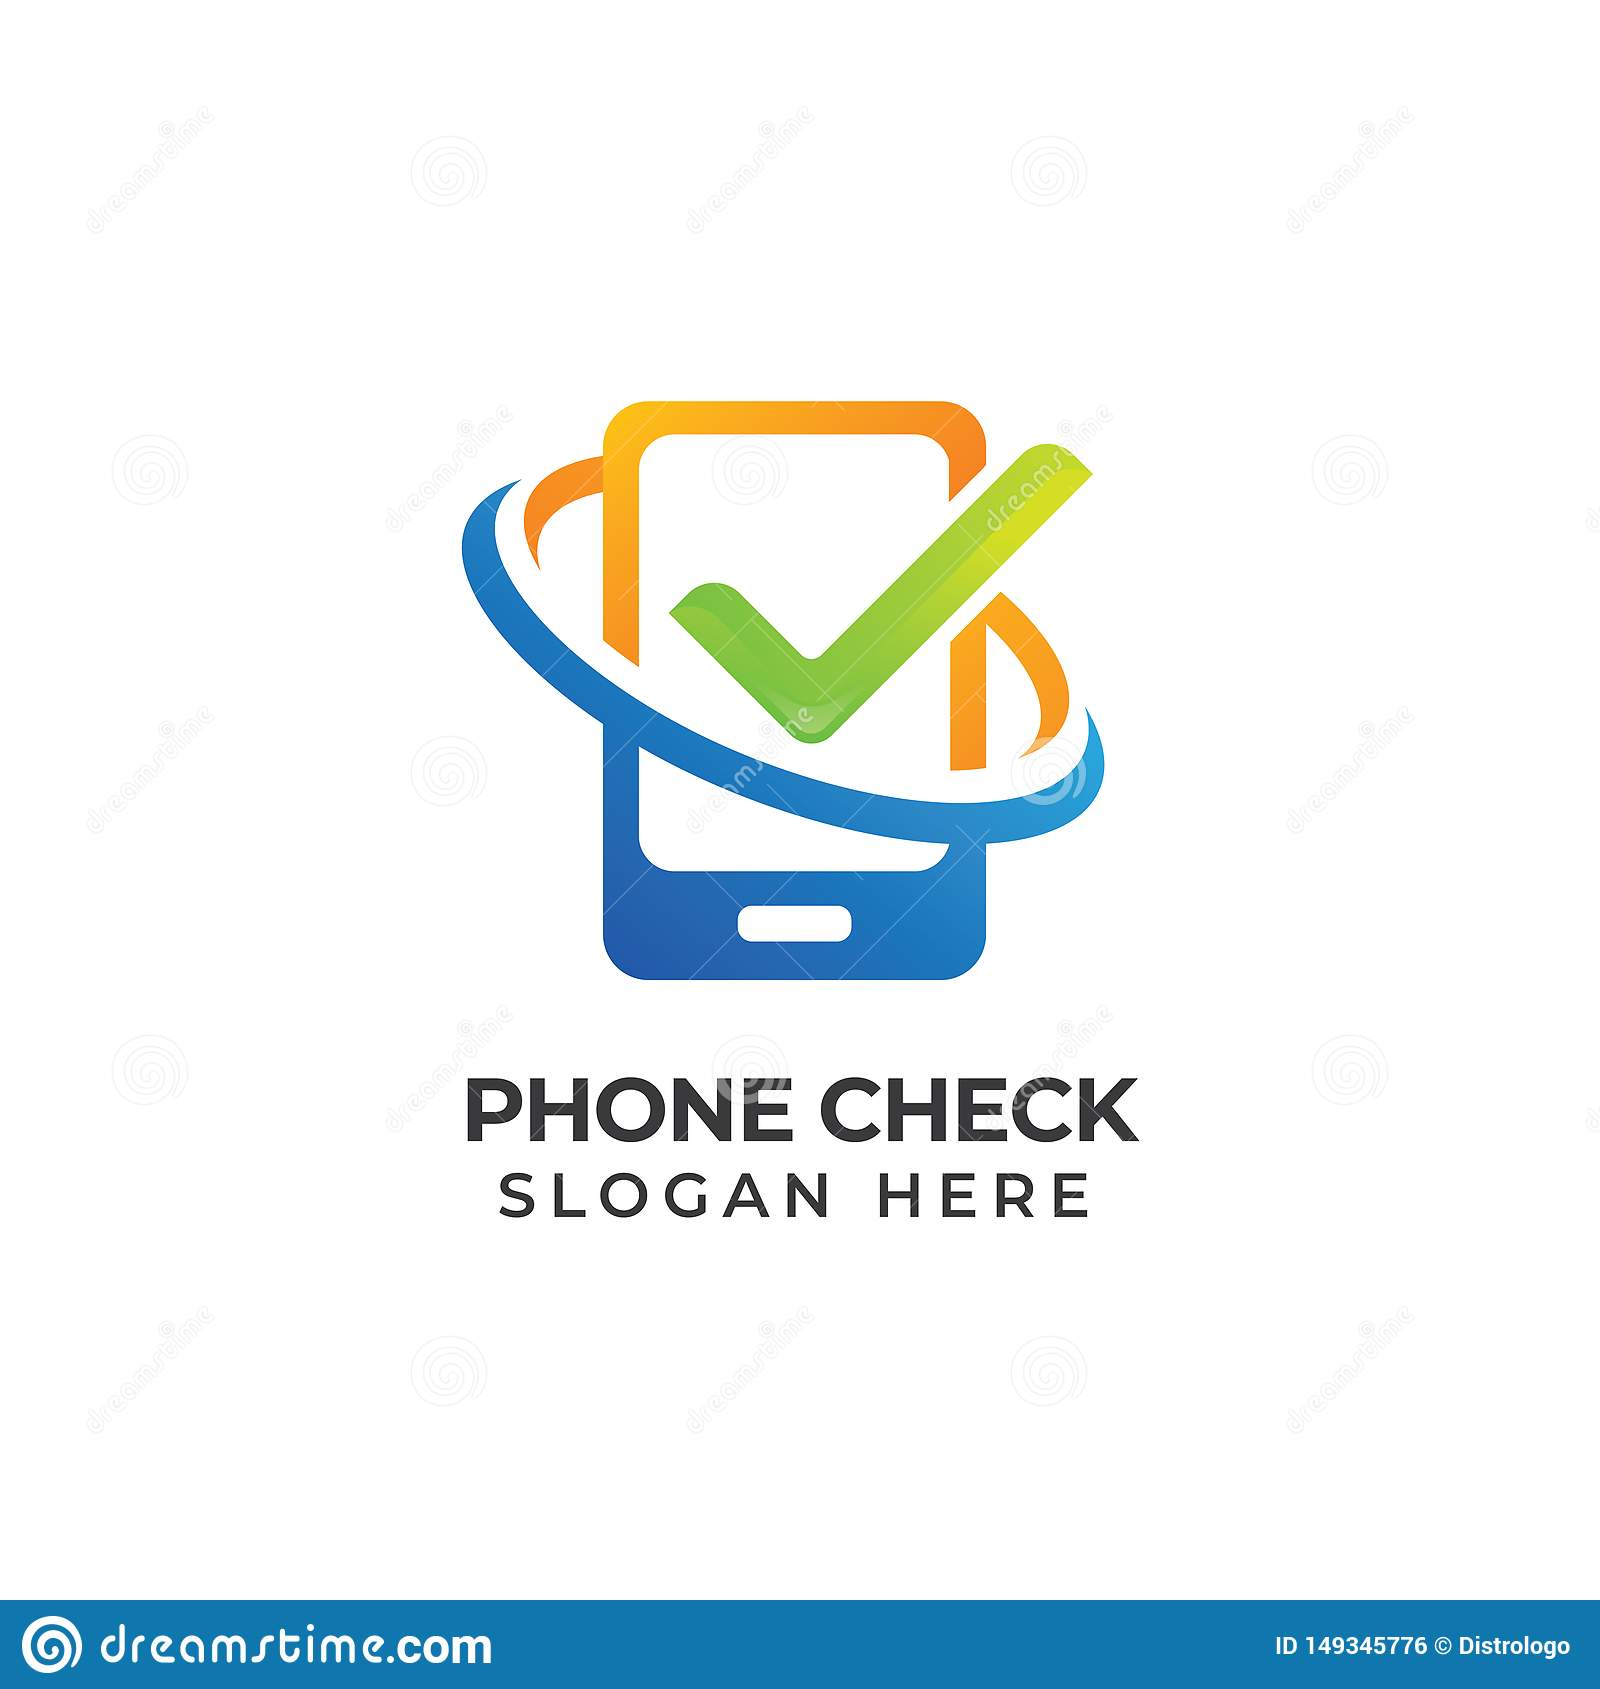 Mobile Phone Repair Logo Template Phone Service Icon Symbol Phone Check Logo Design Stock Vector Illustration Of Digital Repair 149345776